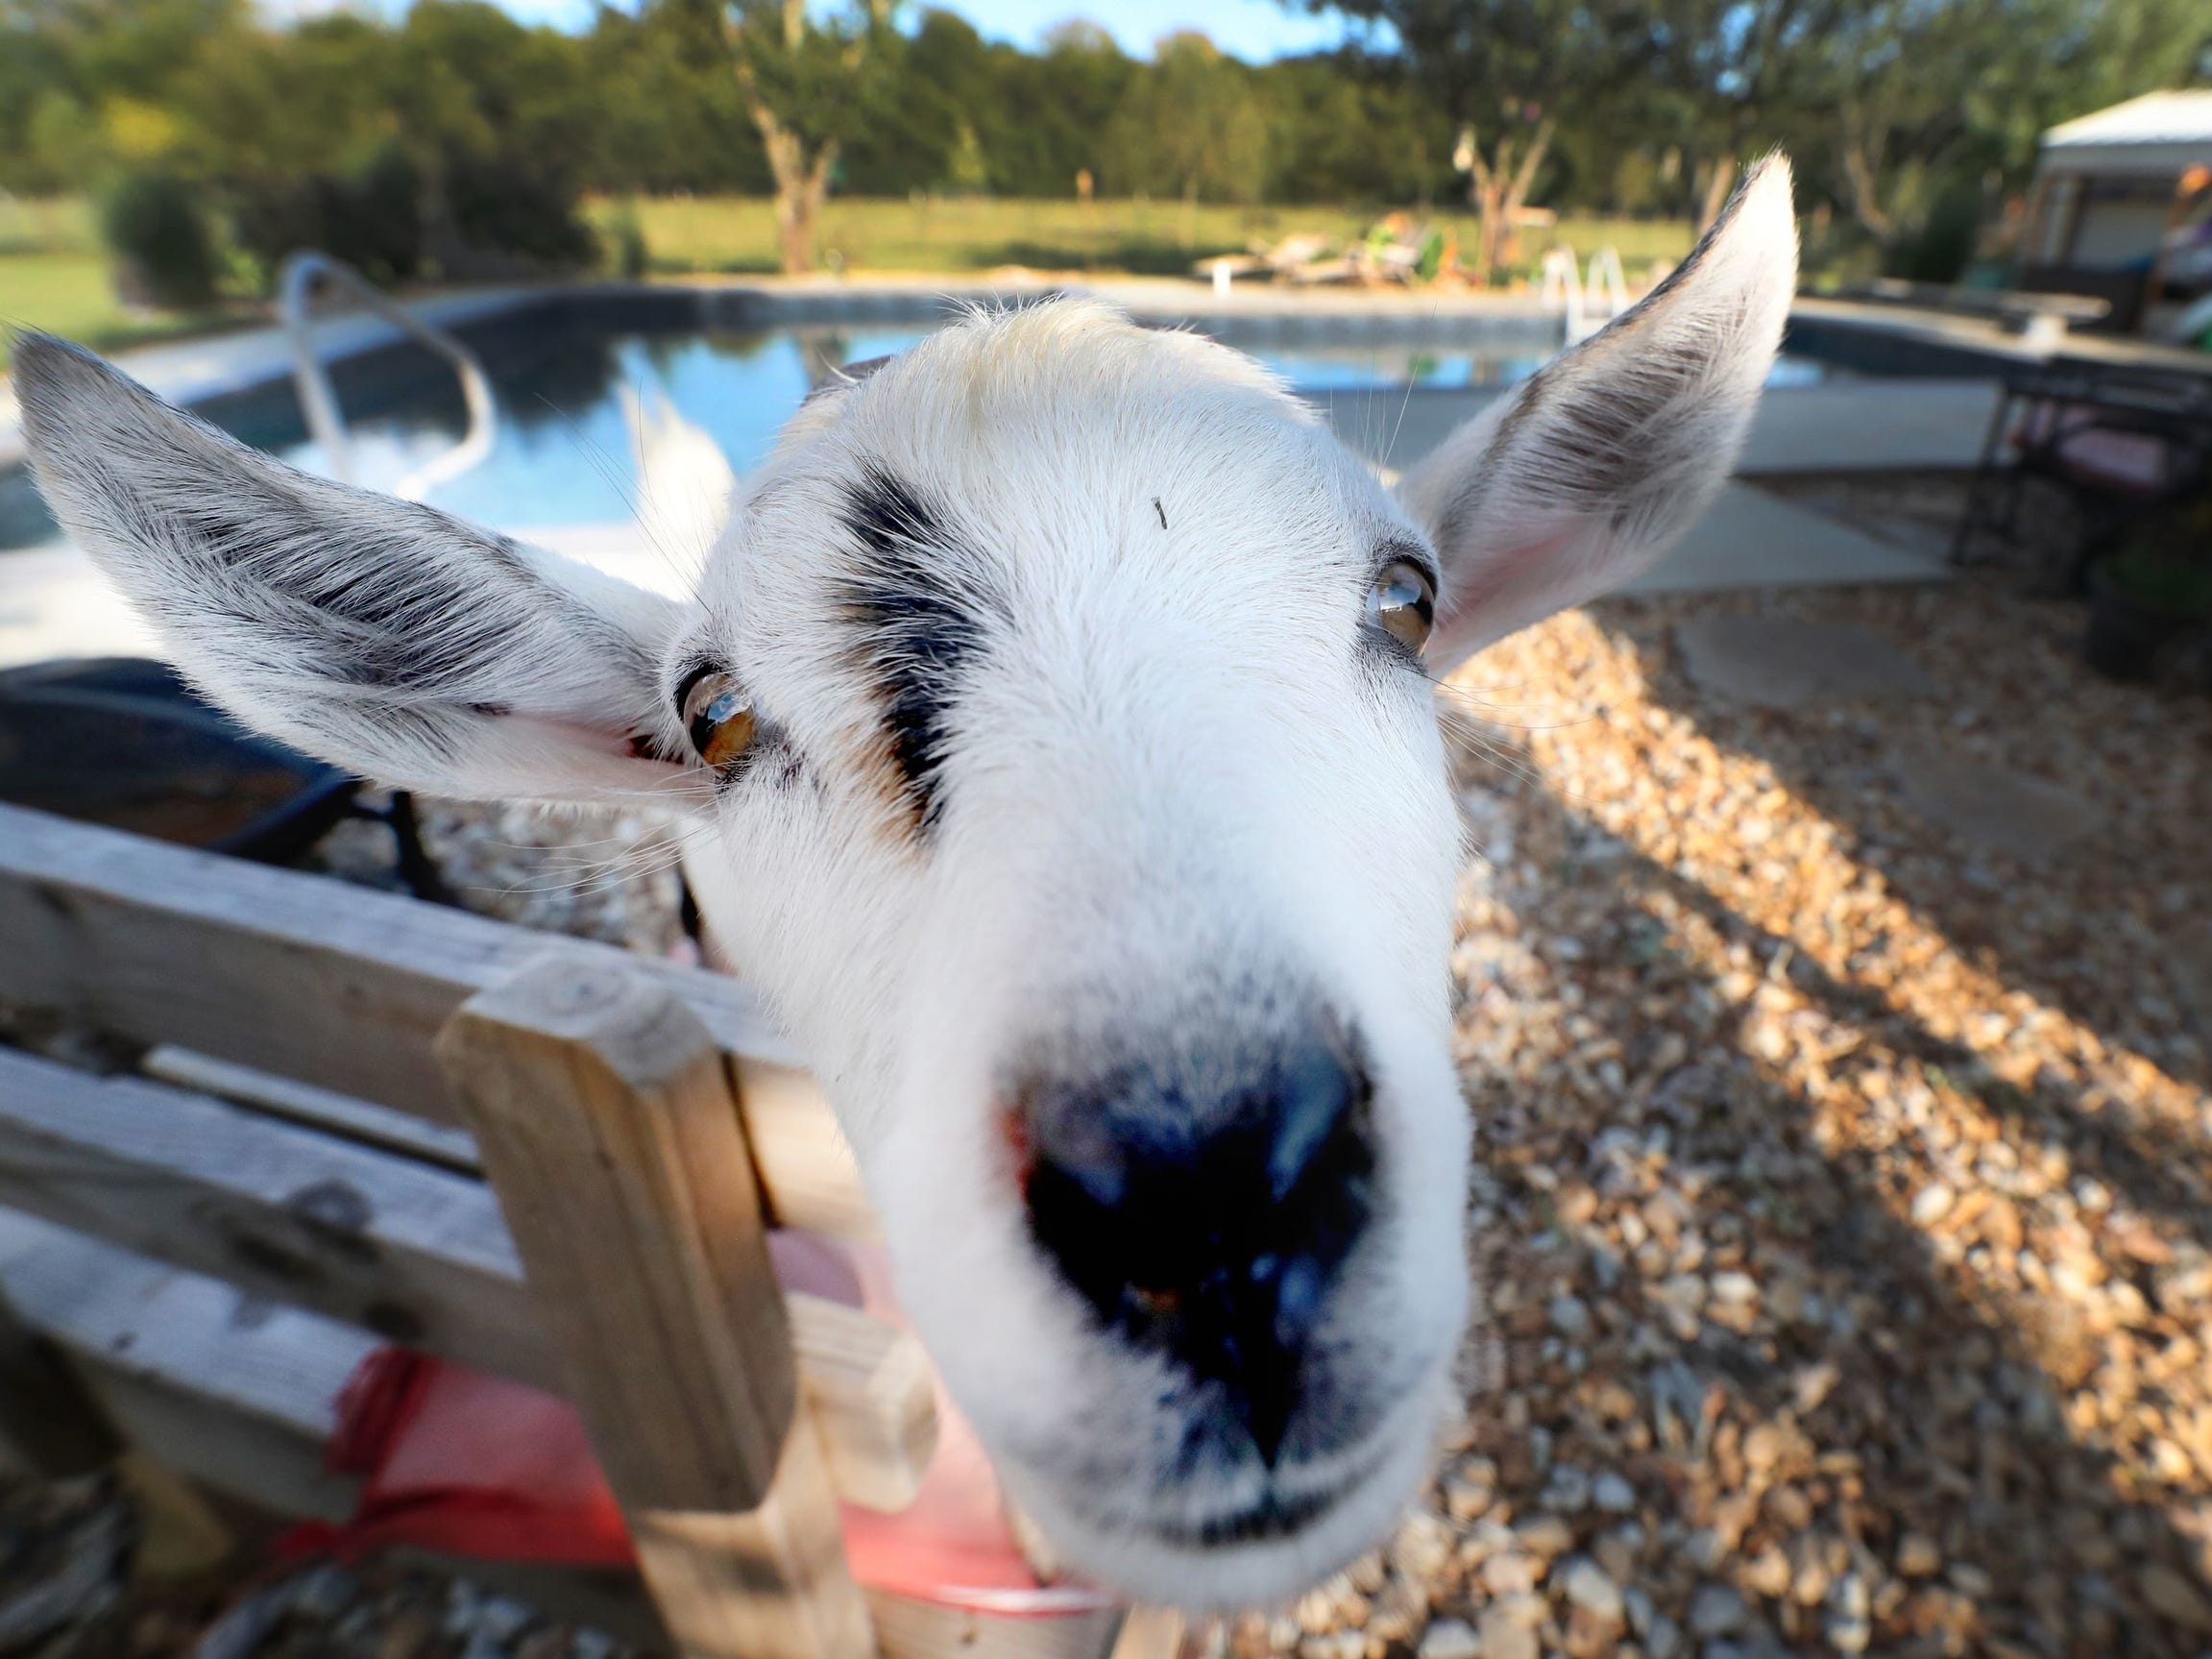 Felix the goat takes a closer look at the camera at Sugarbush Farms, on Tuesday, Sept. 18, 2018.